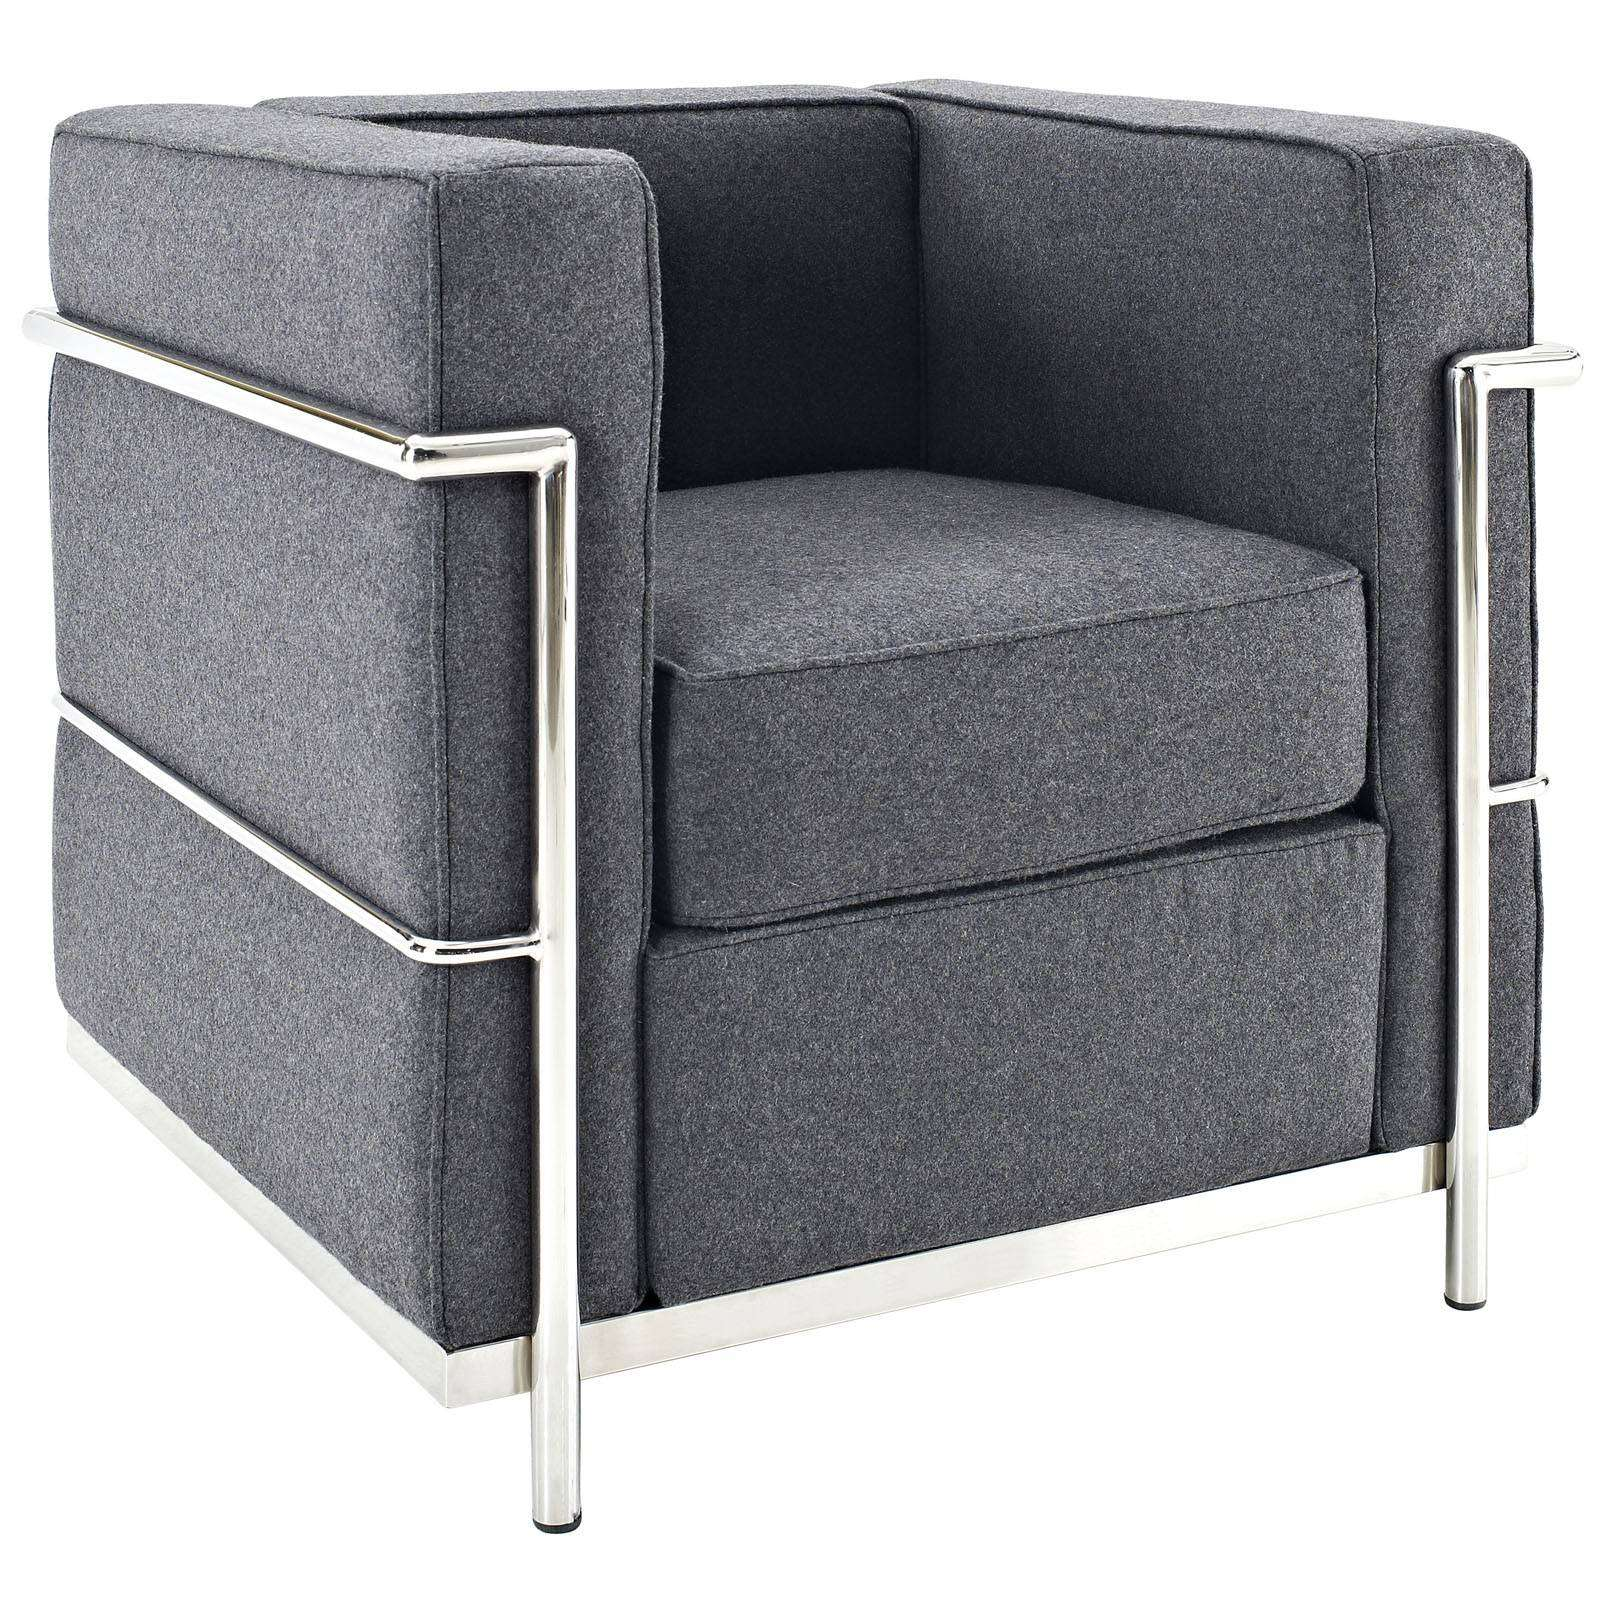 Le corbusier style lc2 arm chair wool for Le corbusier lc2